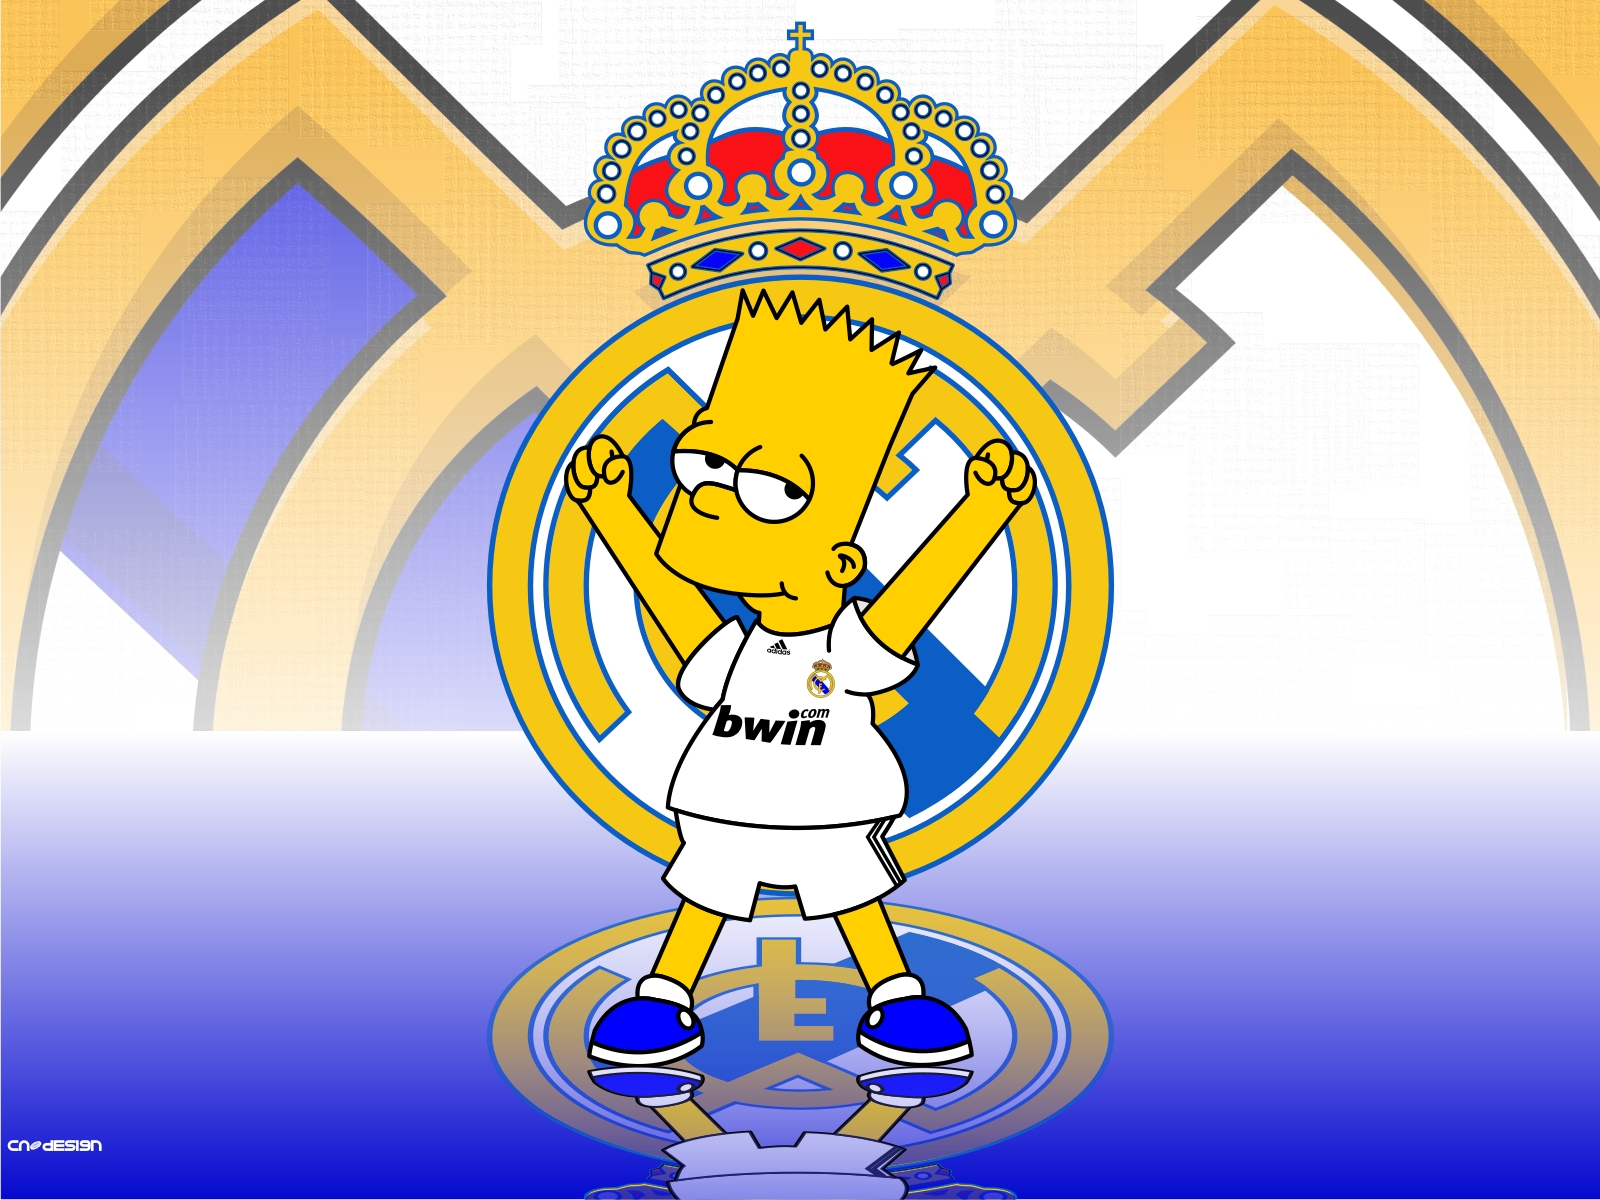 La familia Simpson es fan del Real Madrid , no te pierdas a Bart y